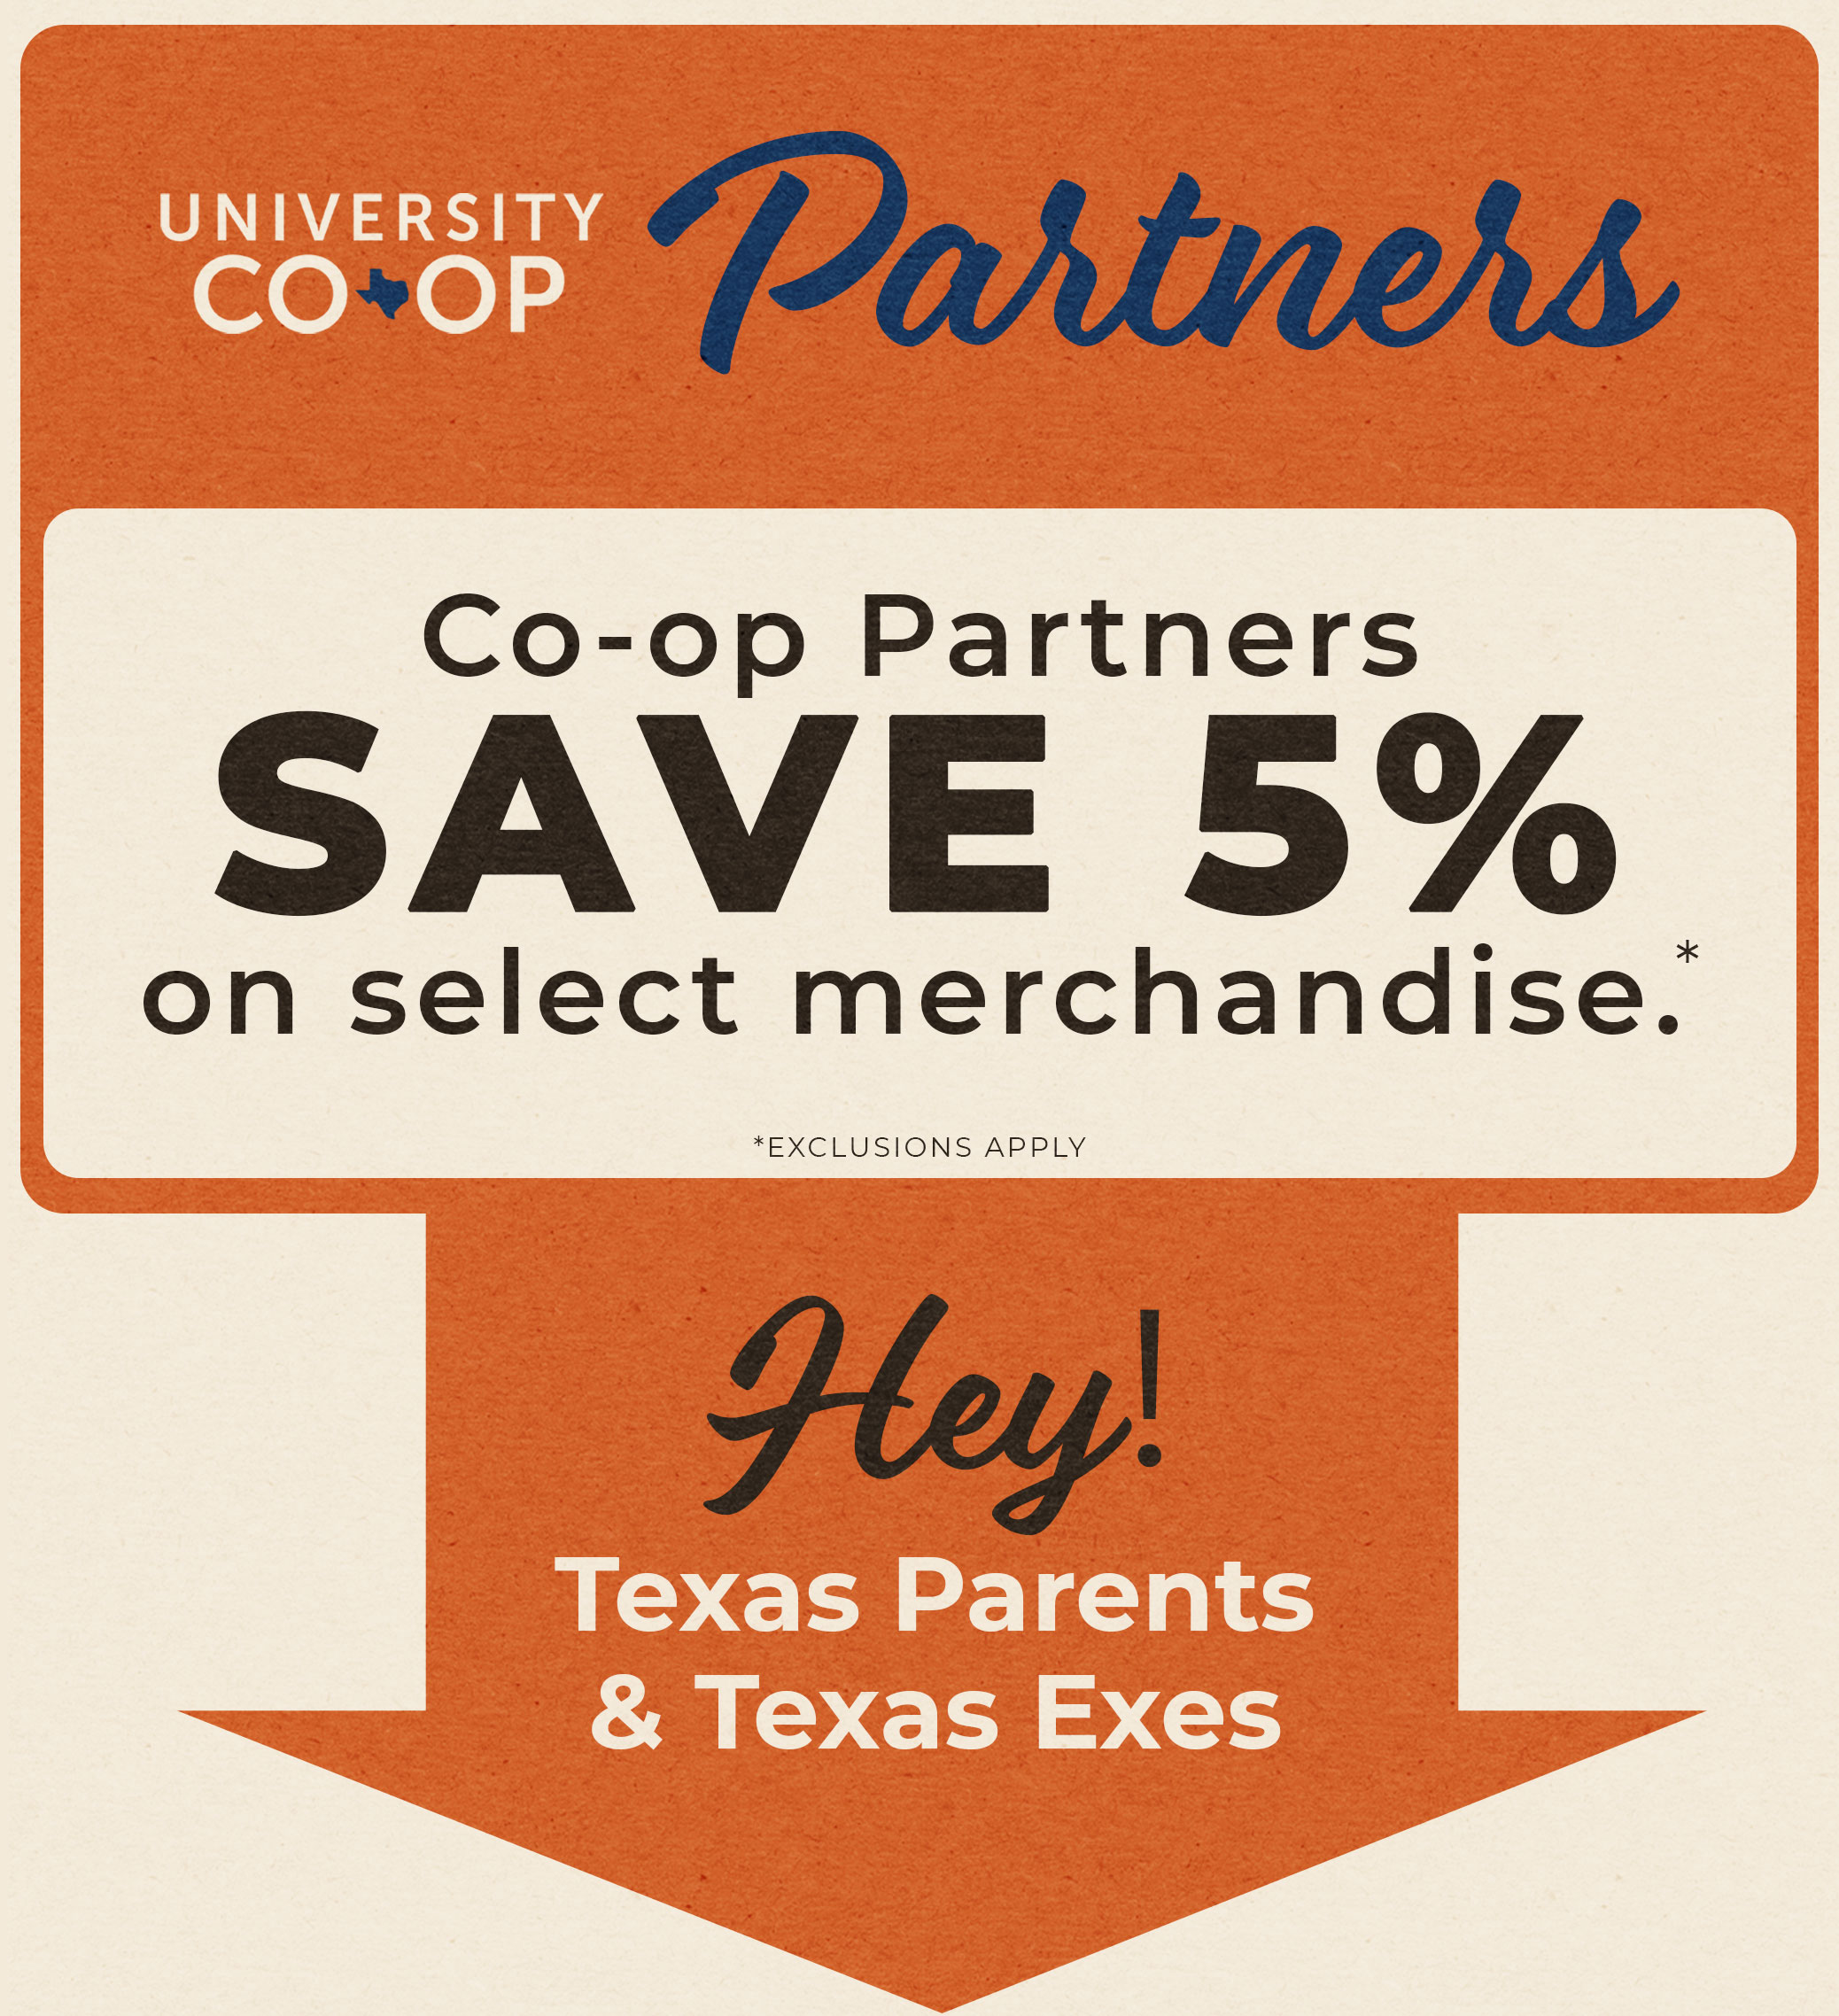 Co-op Partners save 5% on select merchandise!